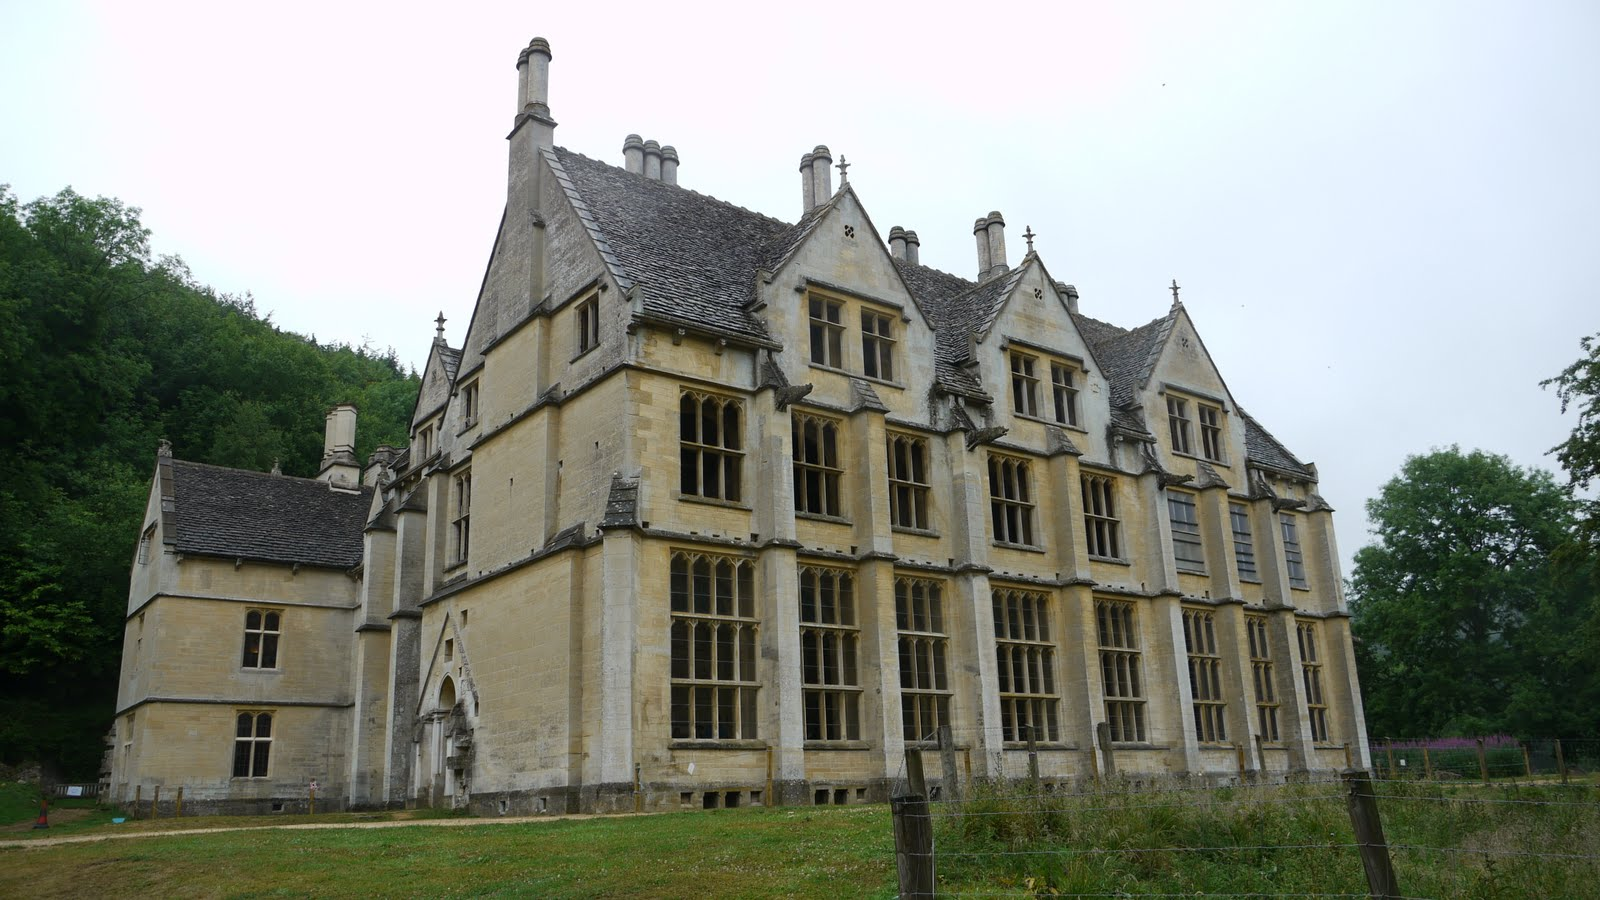 Old Abandoned Mansions for Sale http://devonvisitor.blogspot.com/2010/12/woodchester-park.html